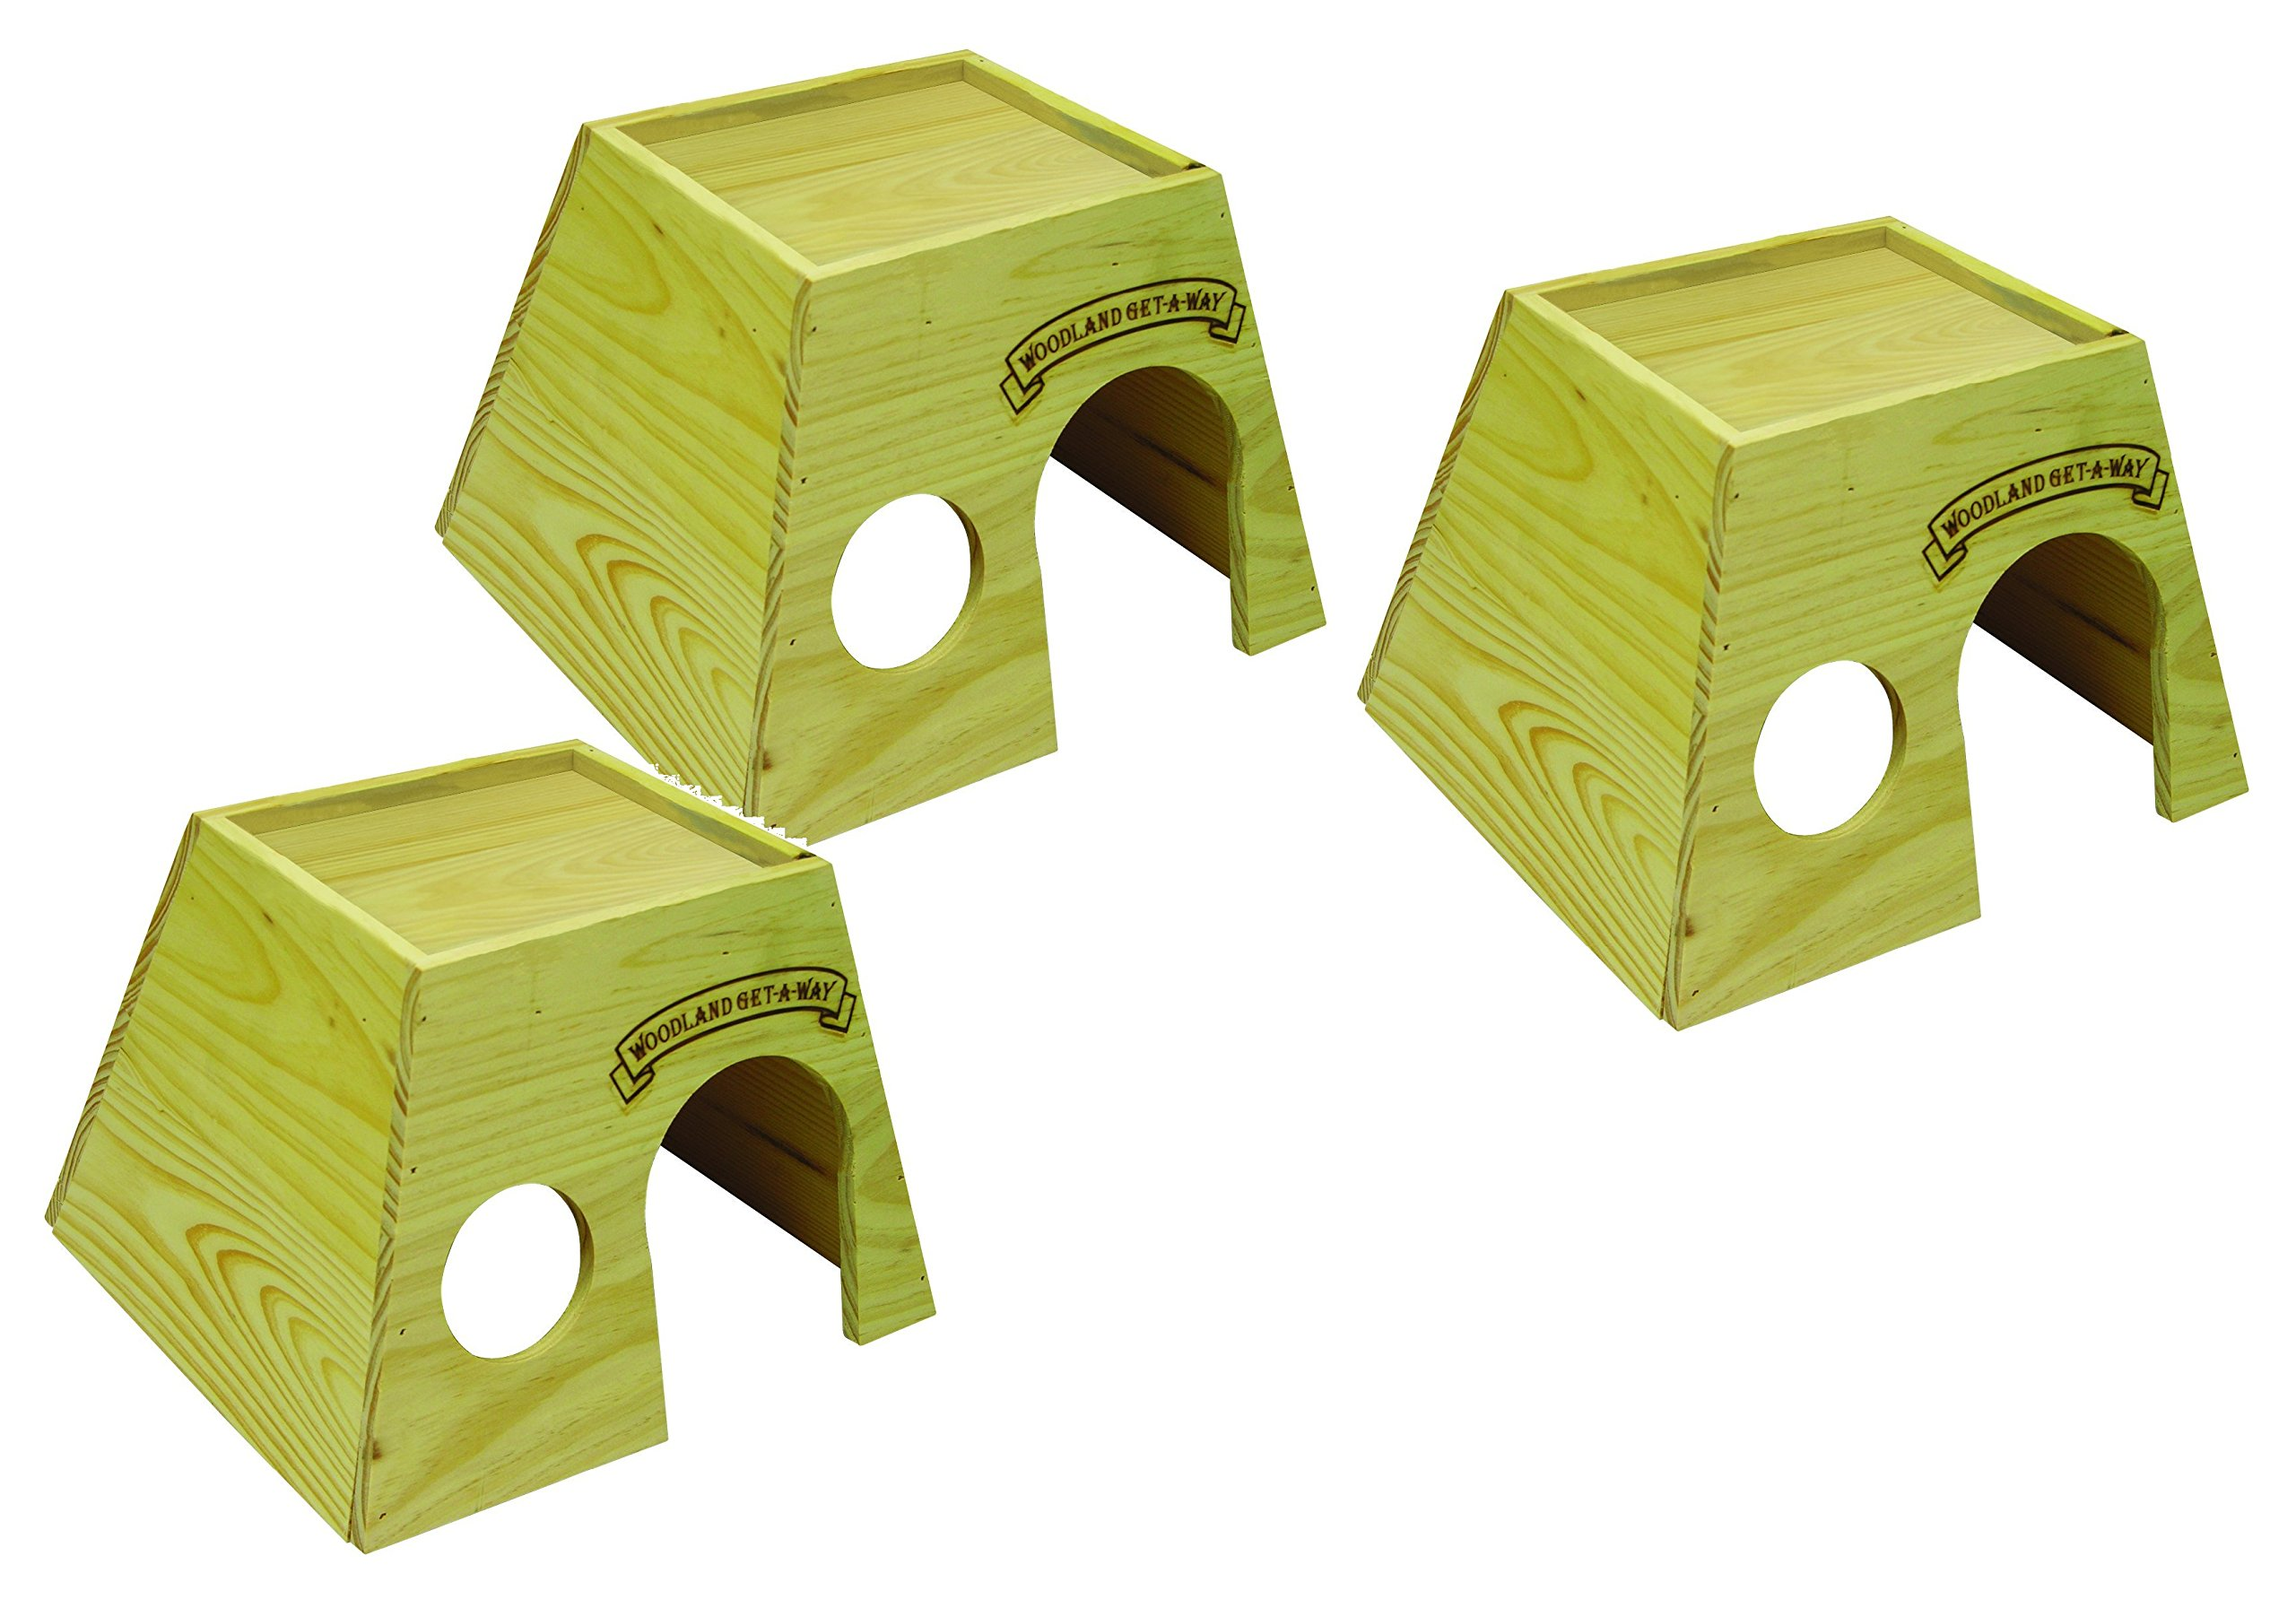 Super Pet Woodland Get-A-Way Large Guinea Pig House (3 Pack) by Super Pet